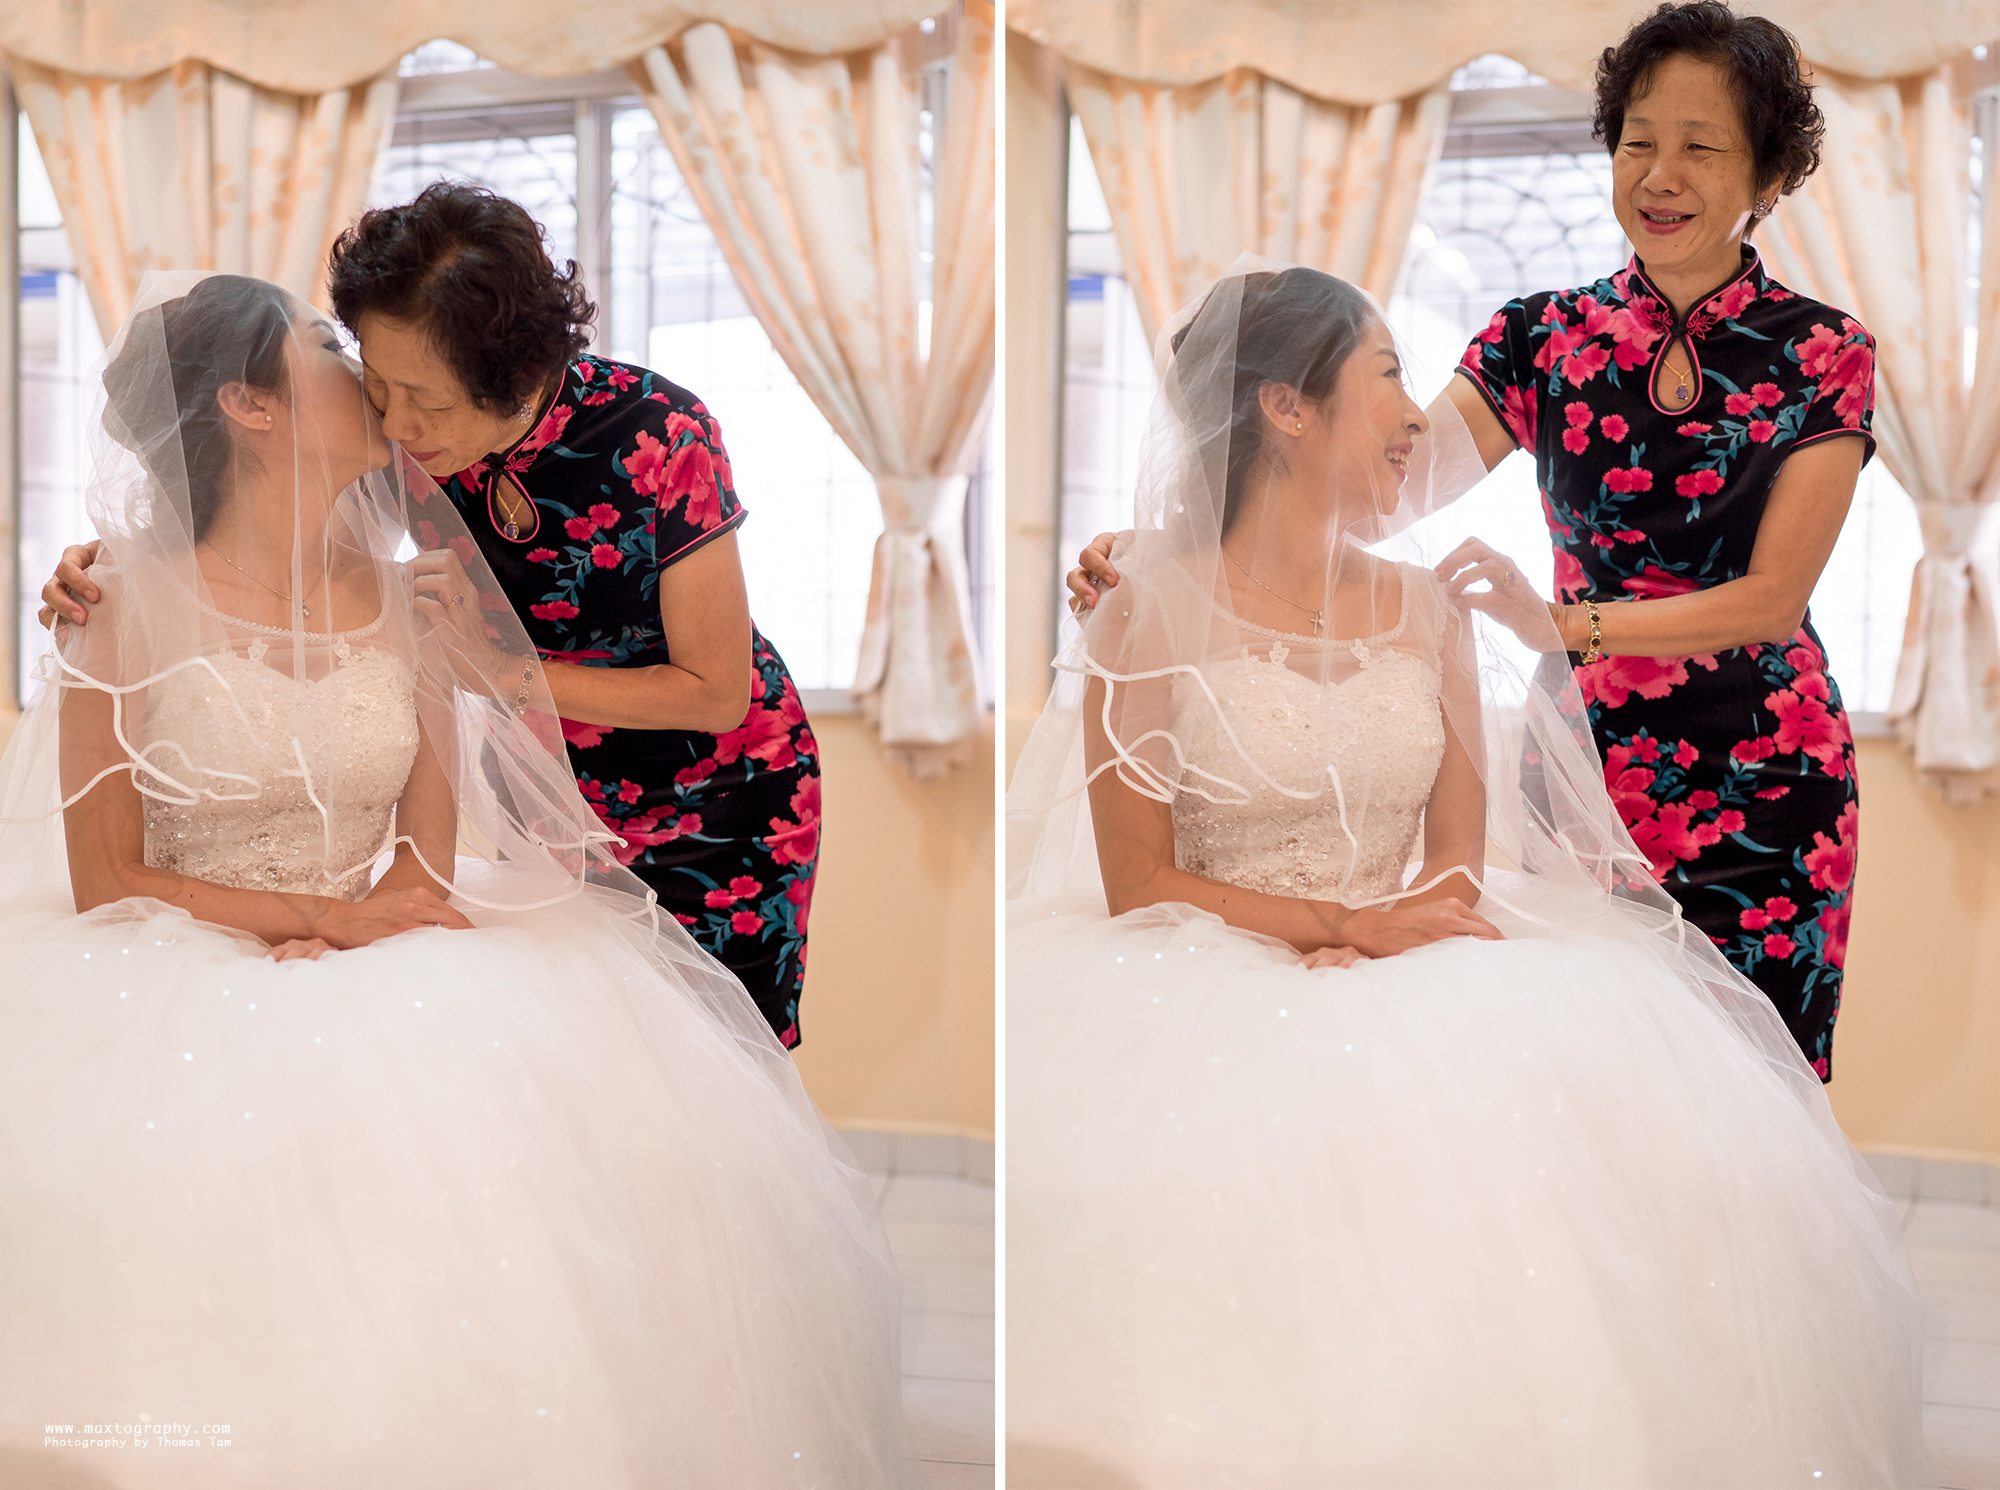 mum kisses bride daughter